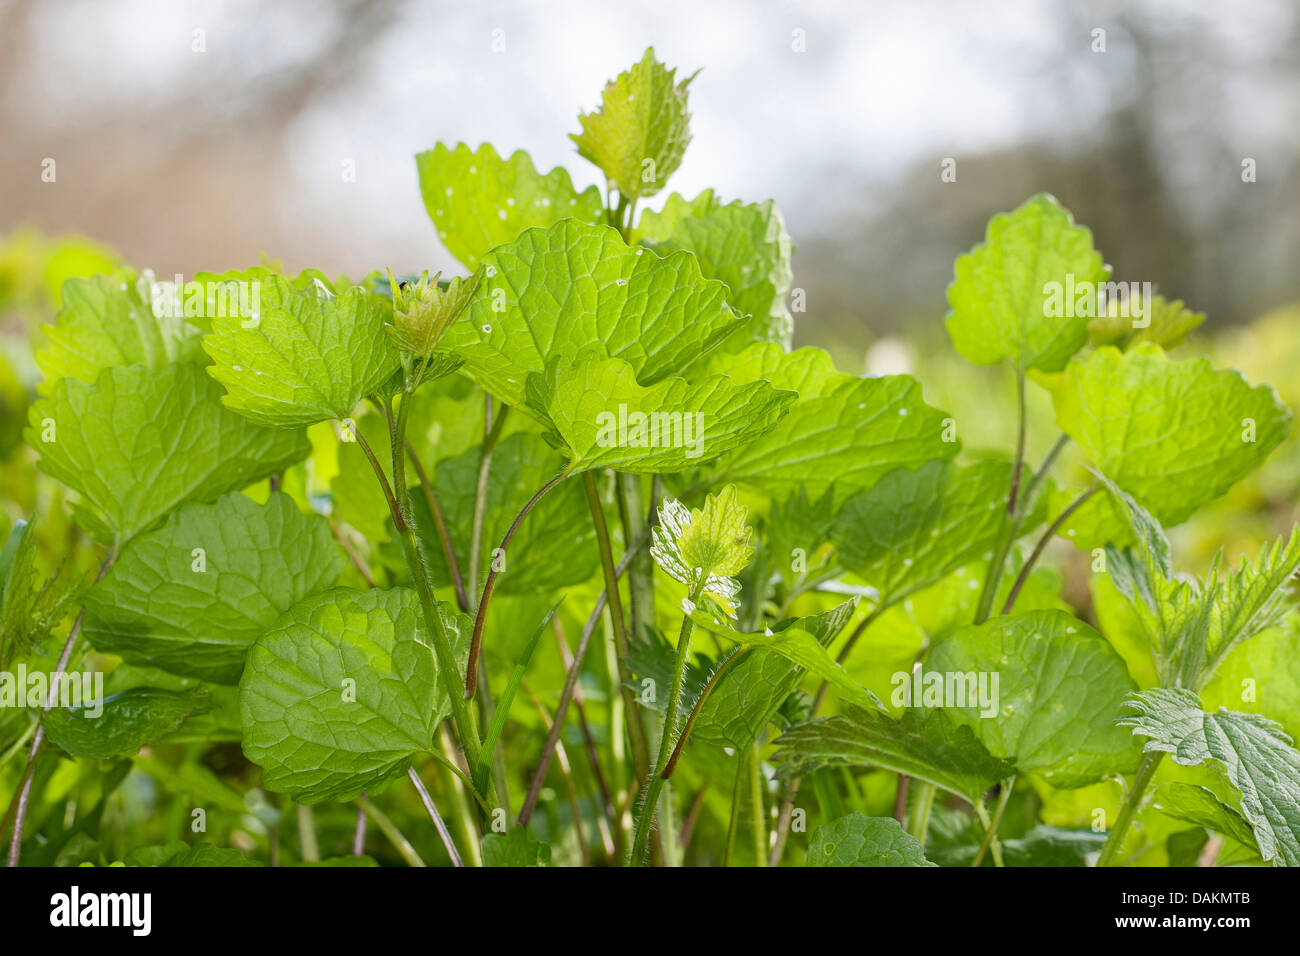 Garlic mustard, Hedge Garlic, Jack-by-the-Hedge (Alliaria petiolata), young leaves, Germany Stock Photo